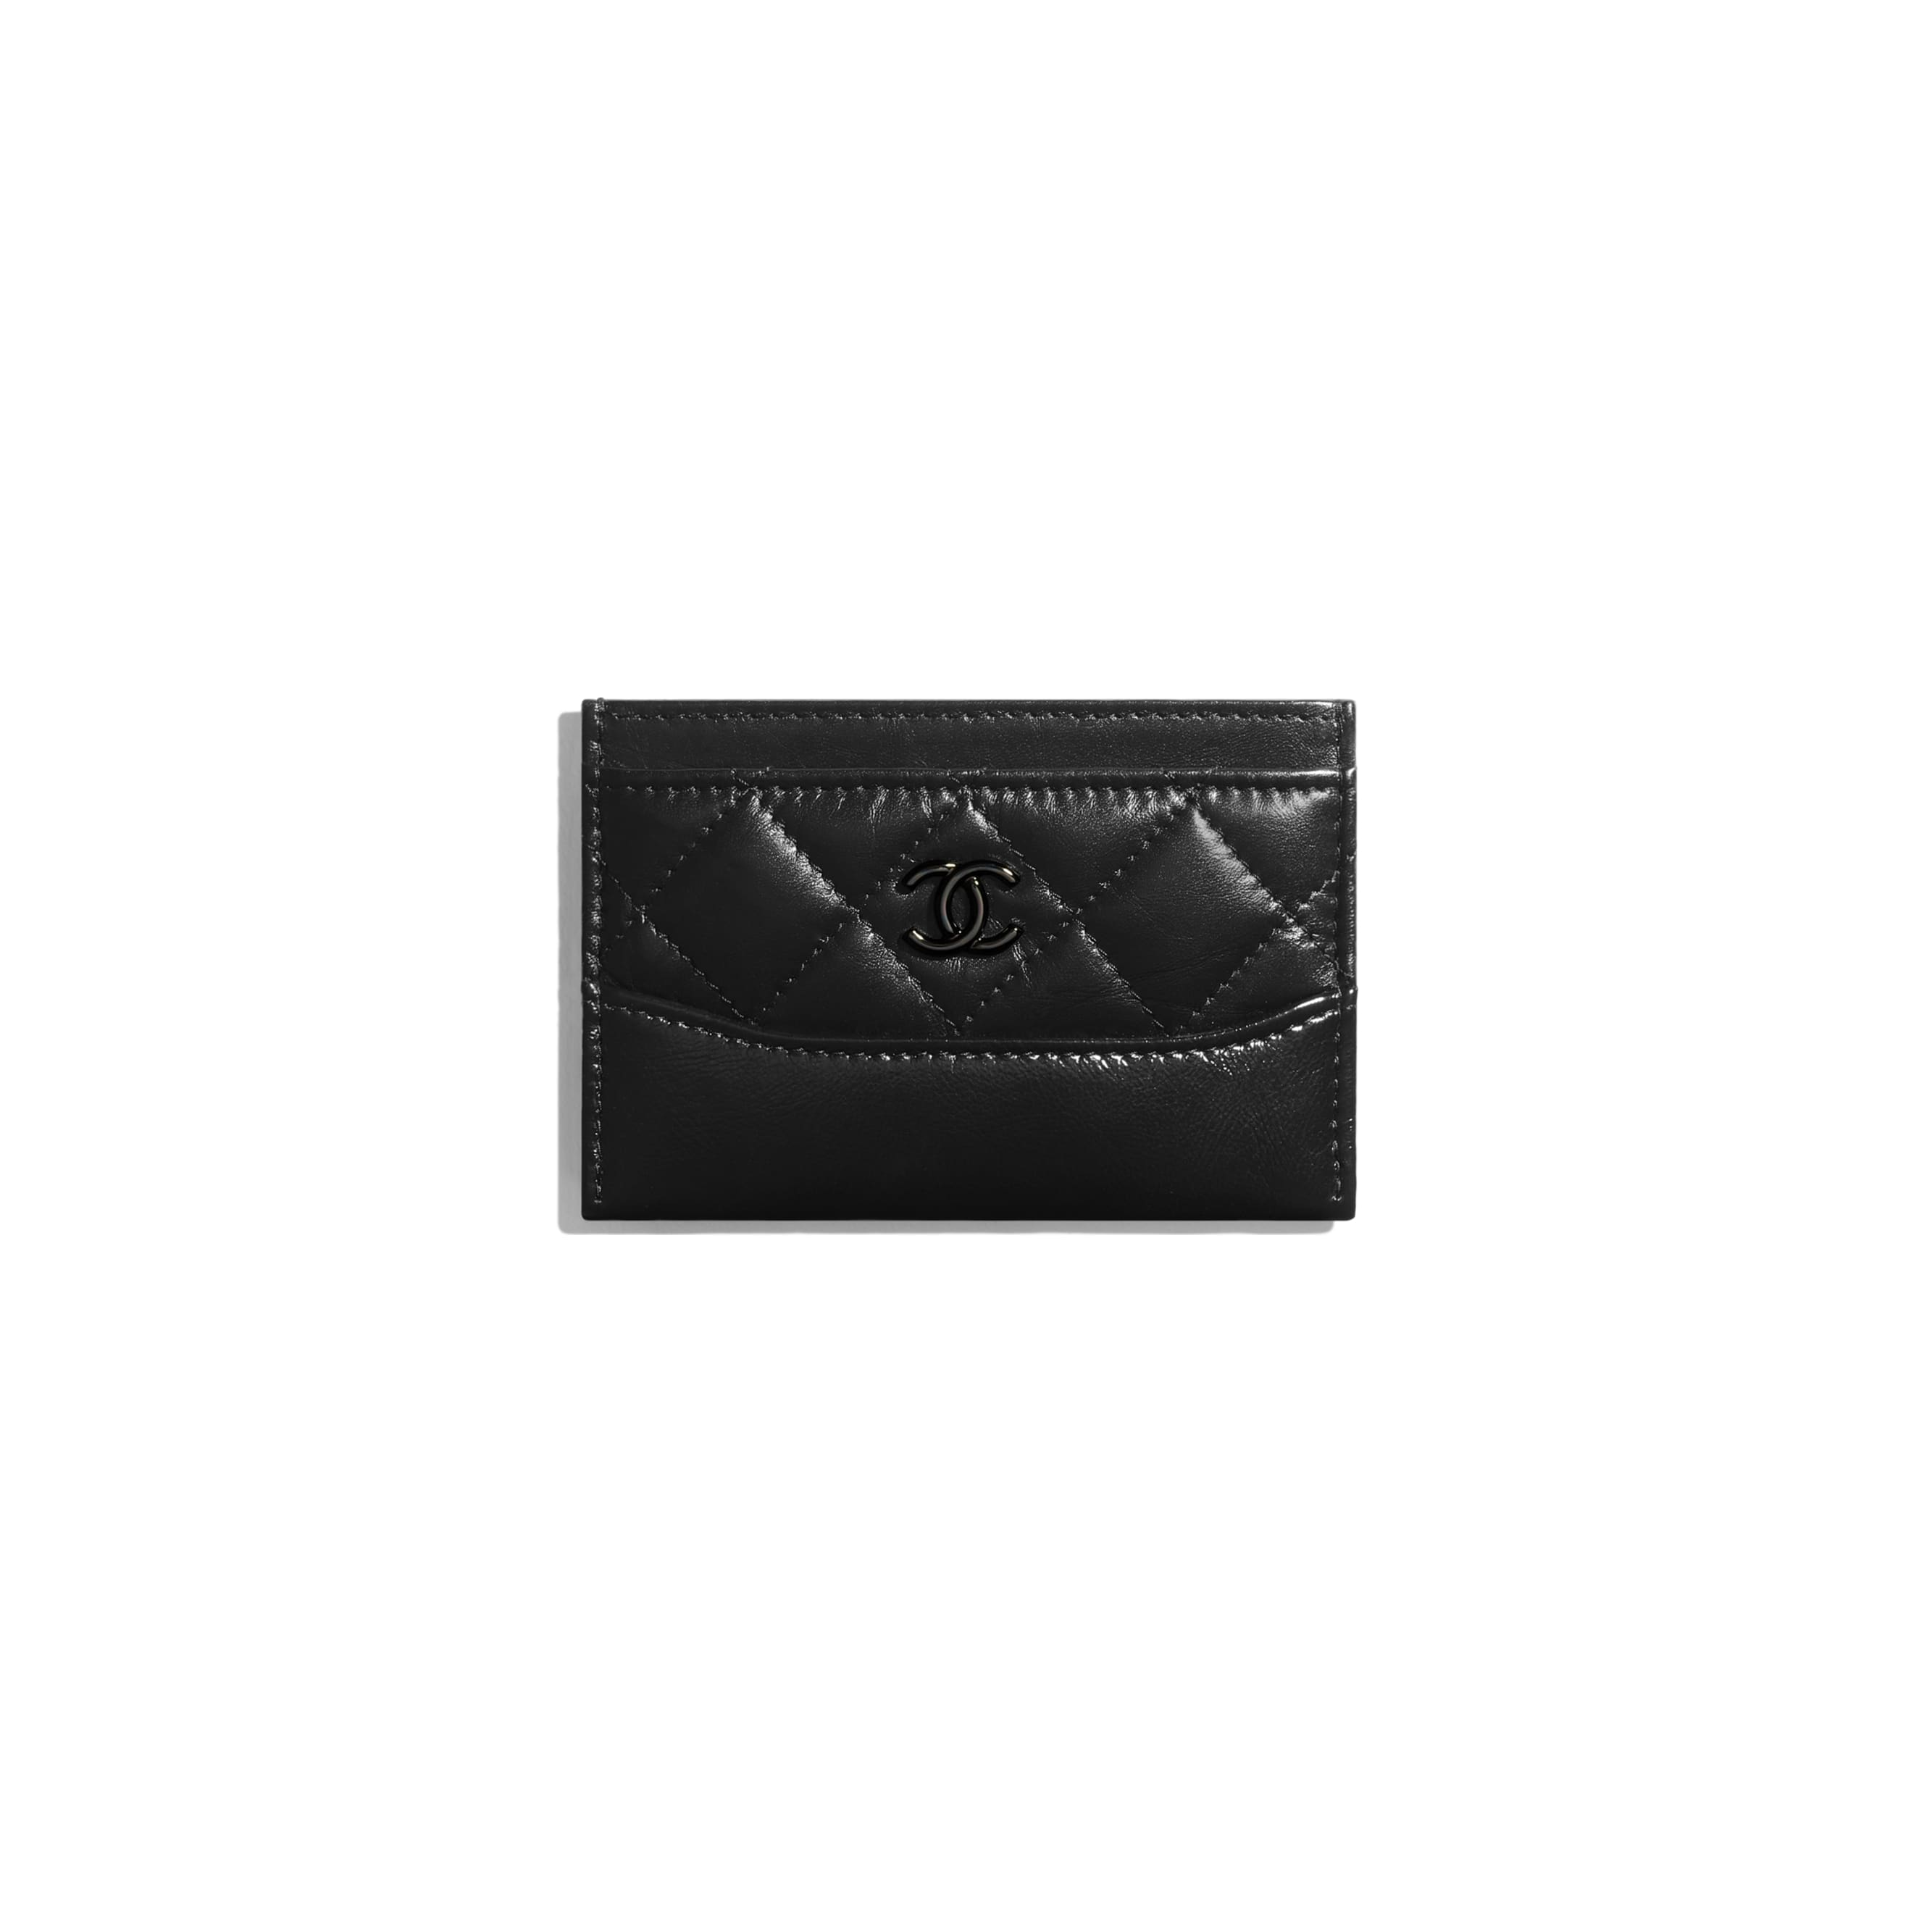 Card Holder - Black - Aged Calfskin, Smooth Calfskin & Black Metal - CHANEL - Default view - see standard sized version